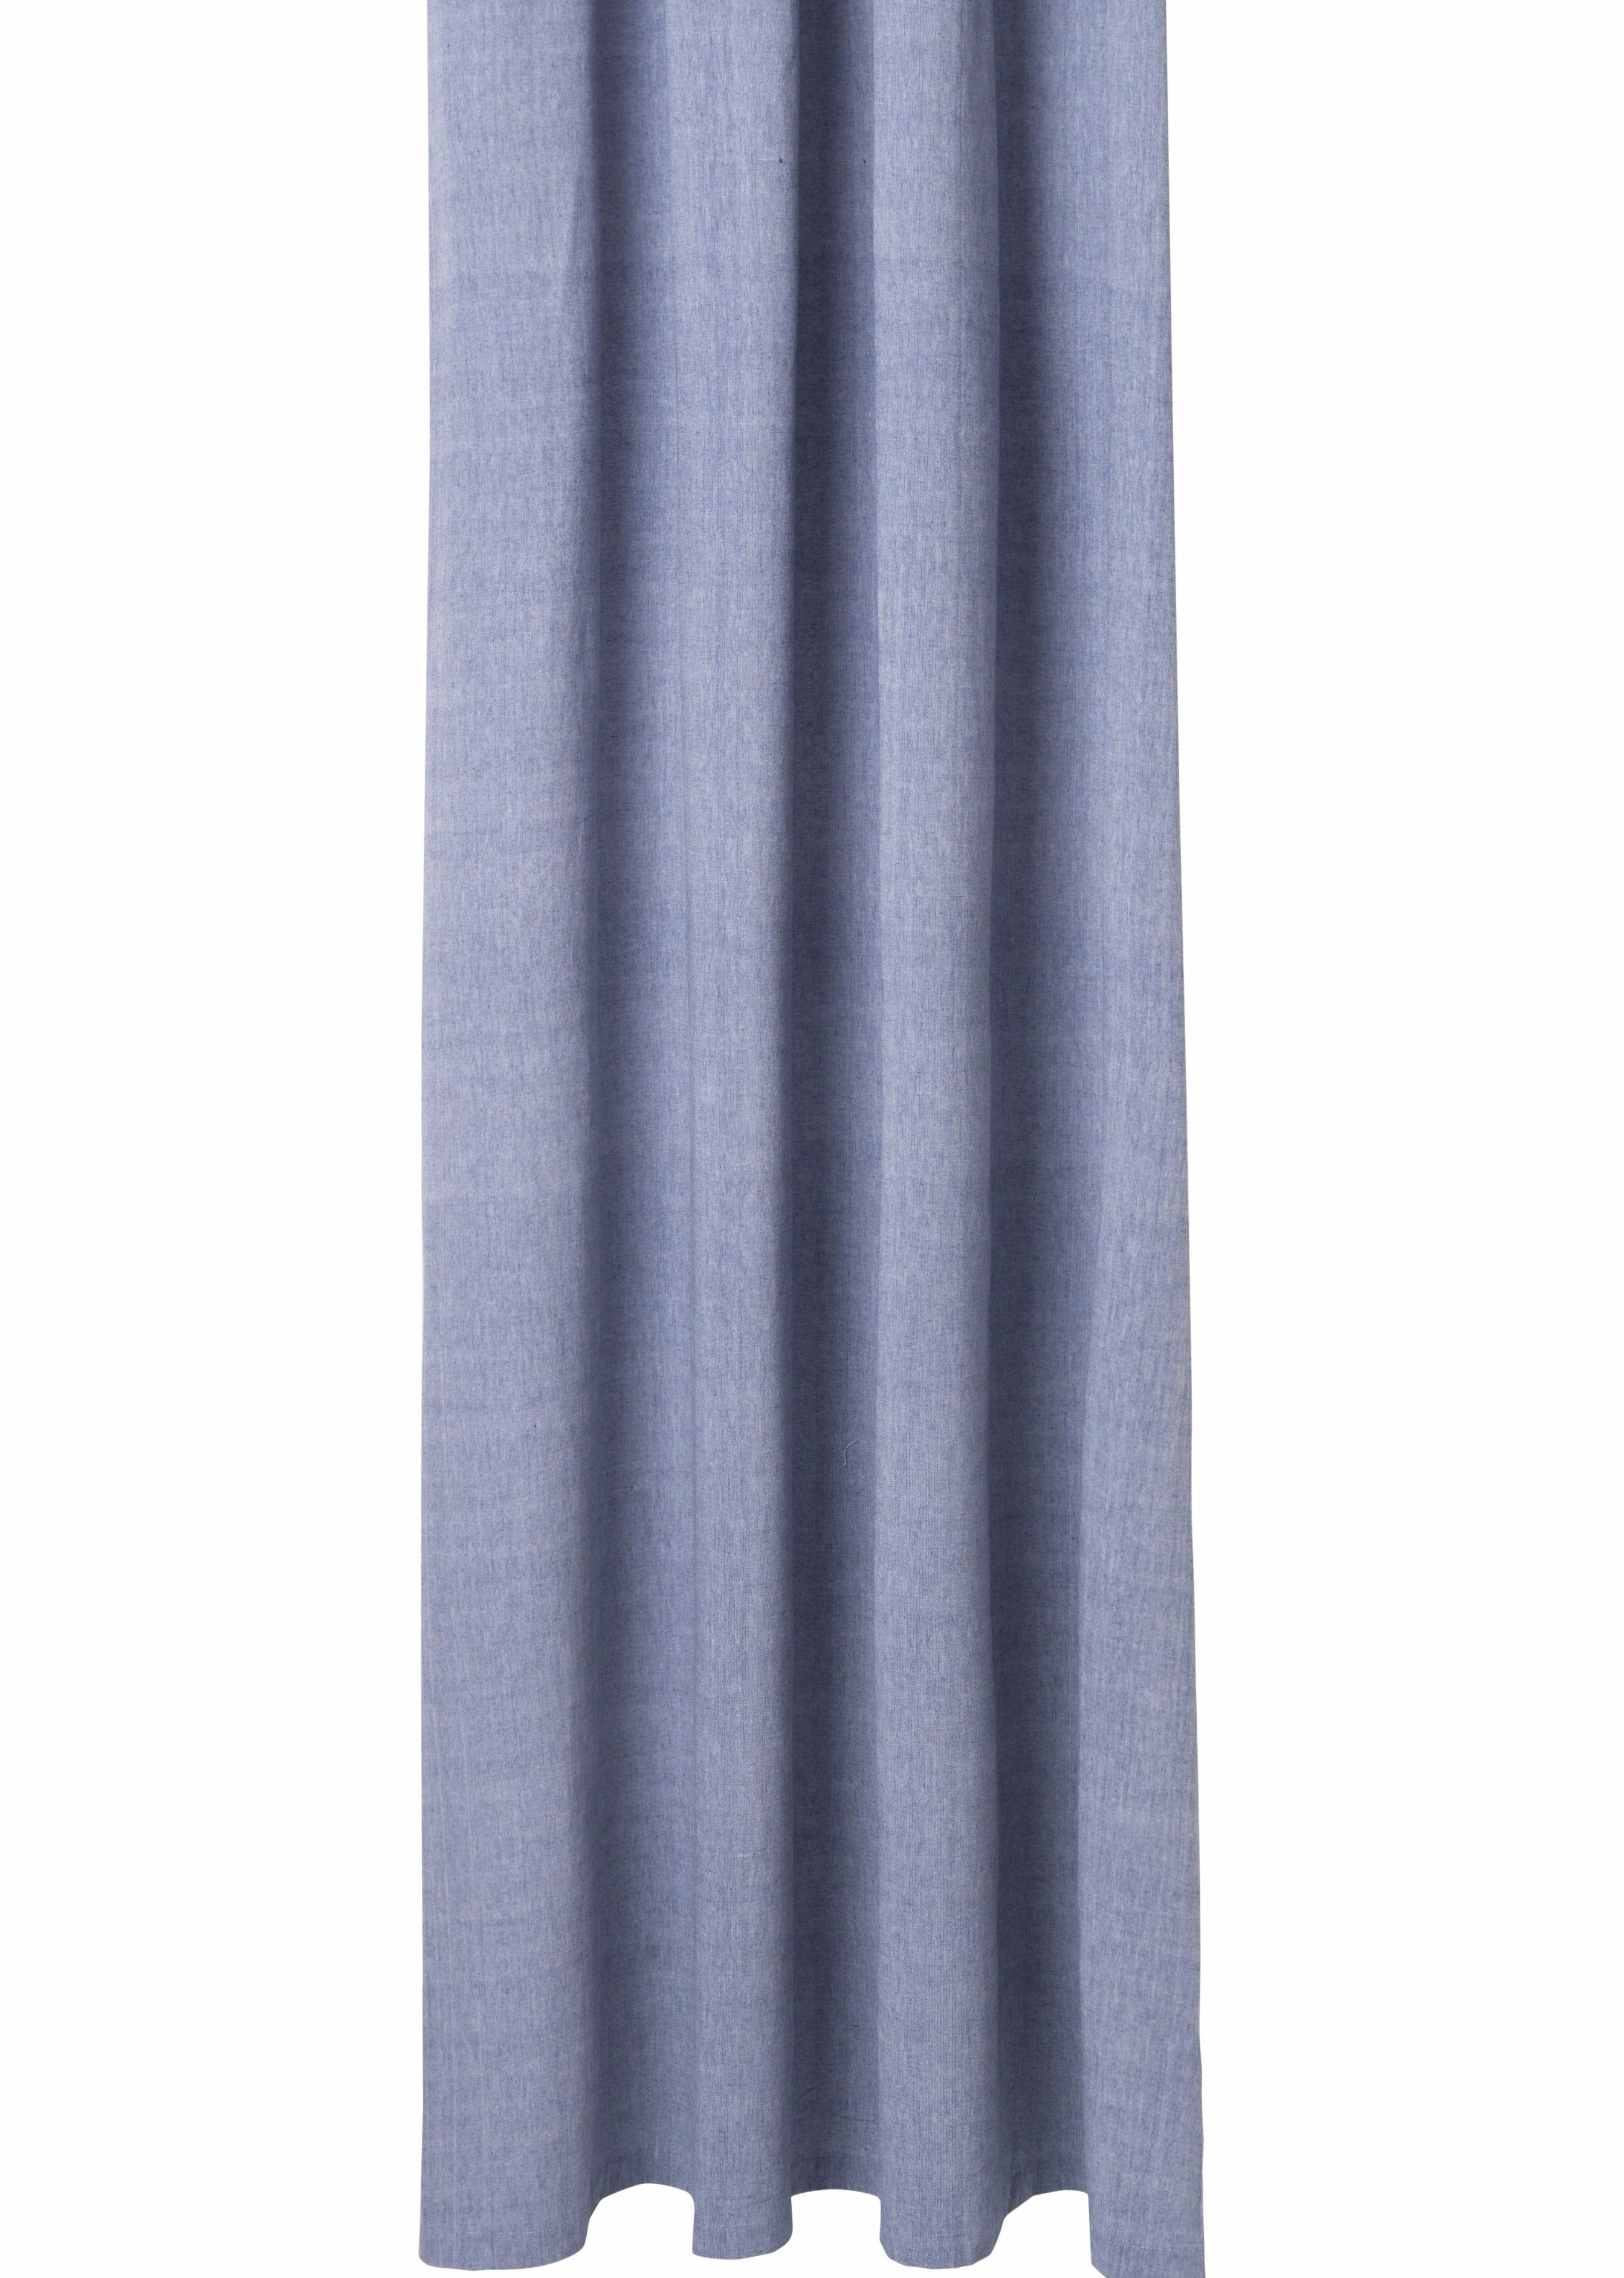 Chambray Shower Curtain in Blue design by Ferm Living